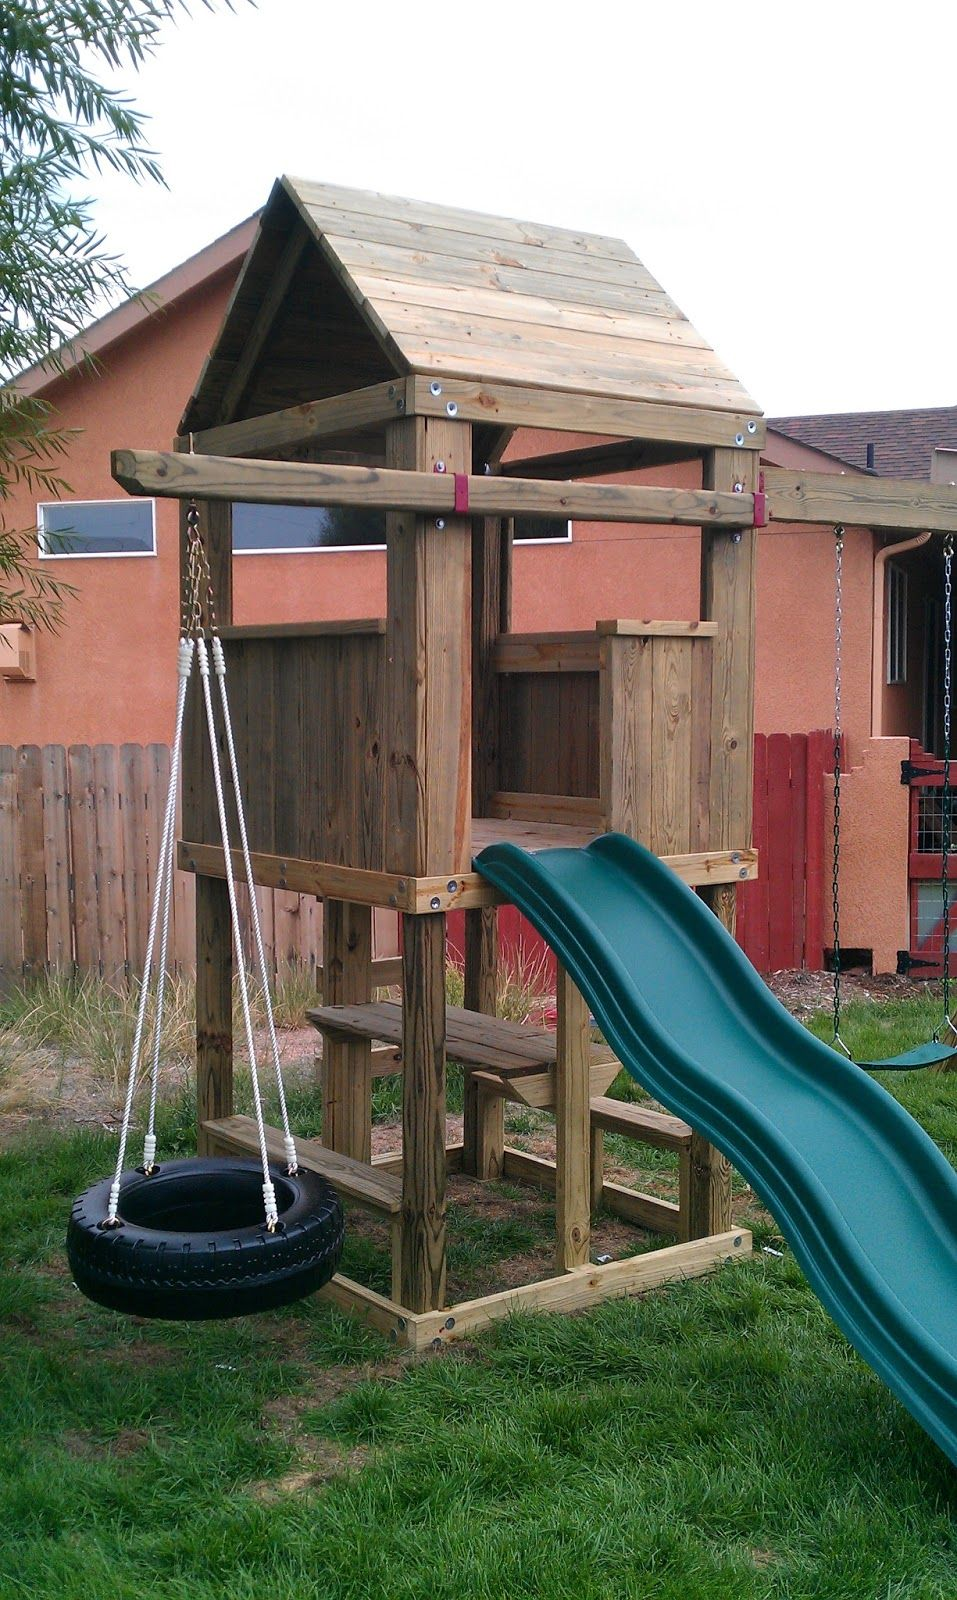 4 u0027x4 u0027 clubhouse with wooden roof ladder entry standard slide